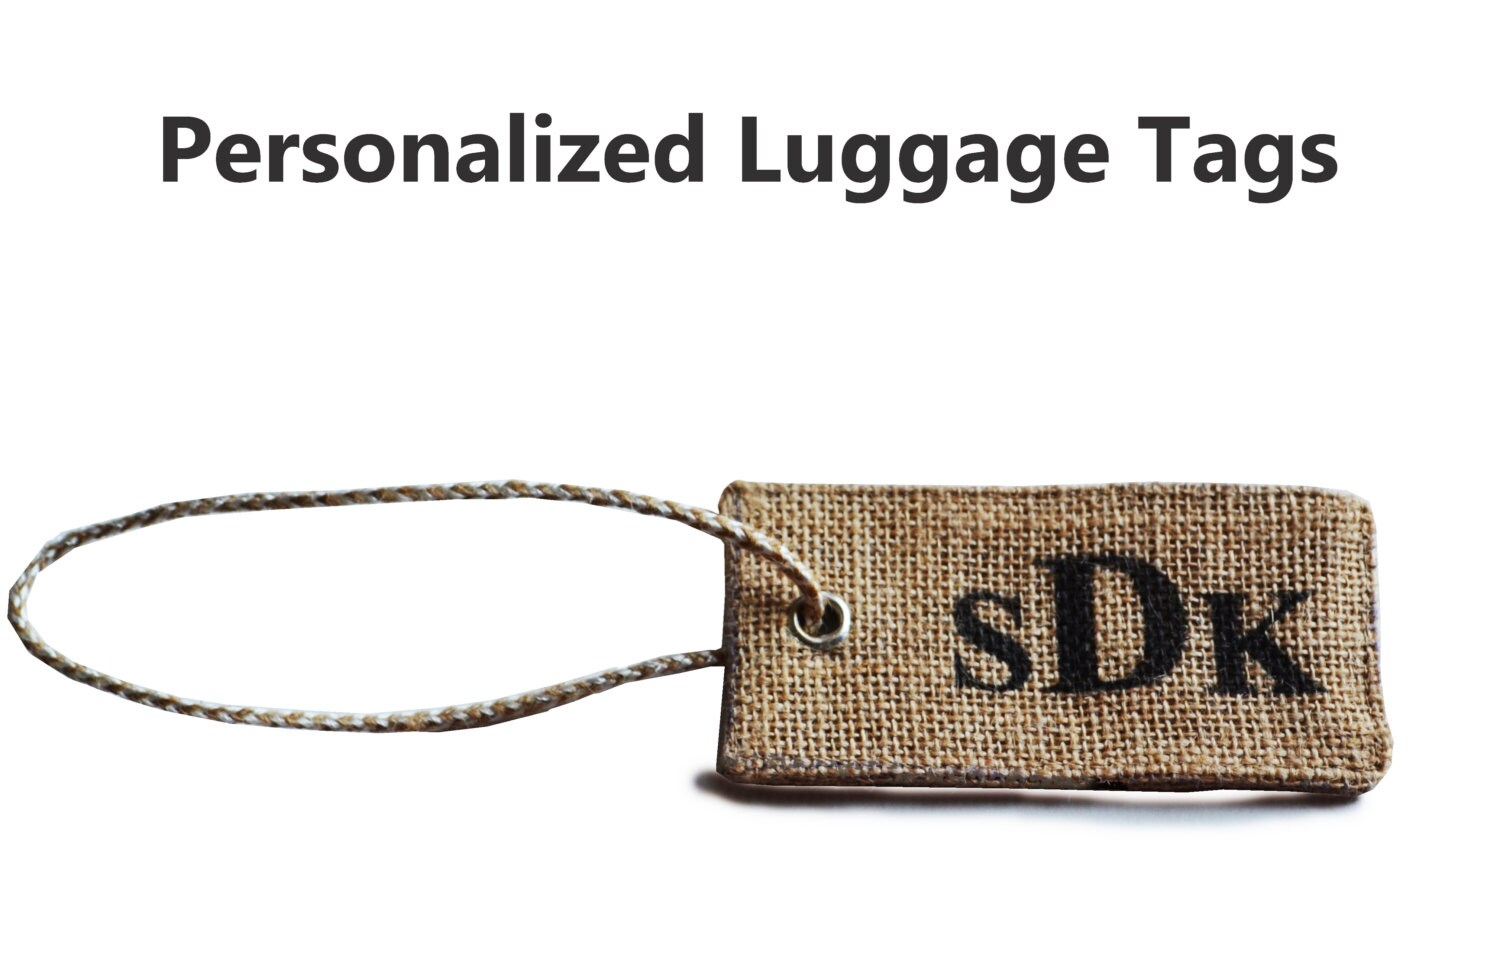 Personalized Luggage Tags Wedding Gift: Personalized Luggage Tag Burlap Wedding Luggage Tags